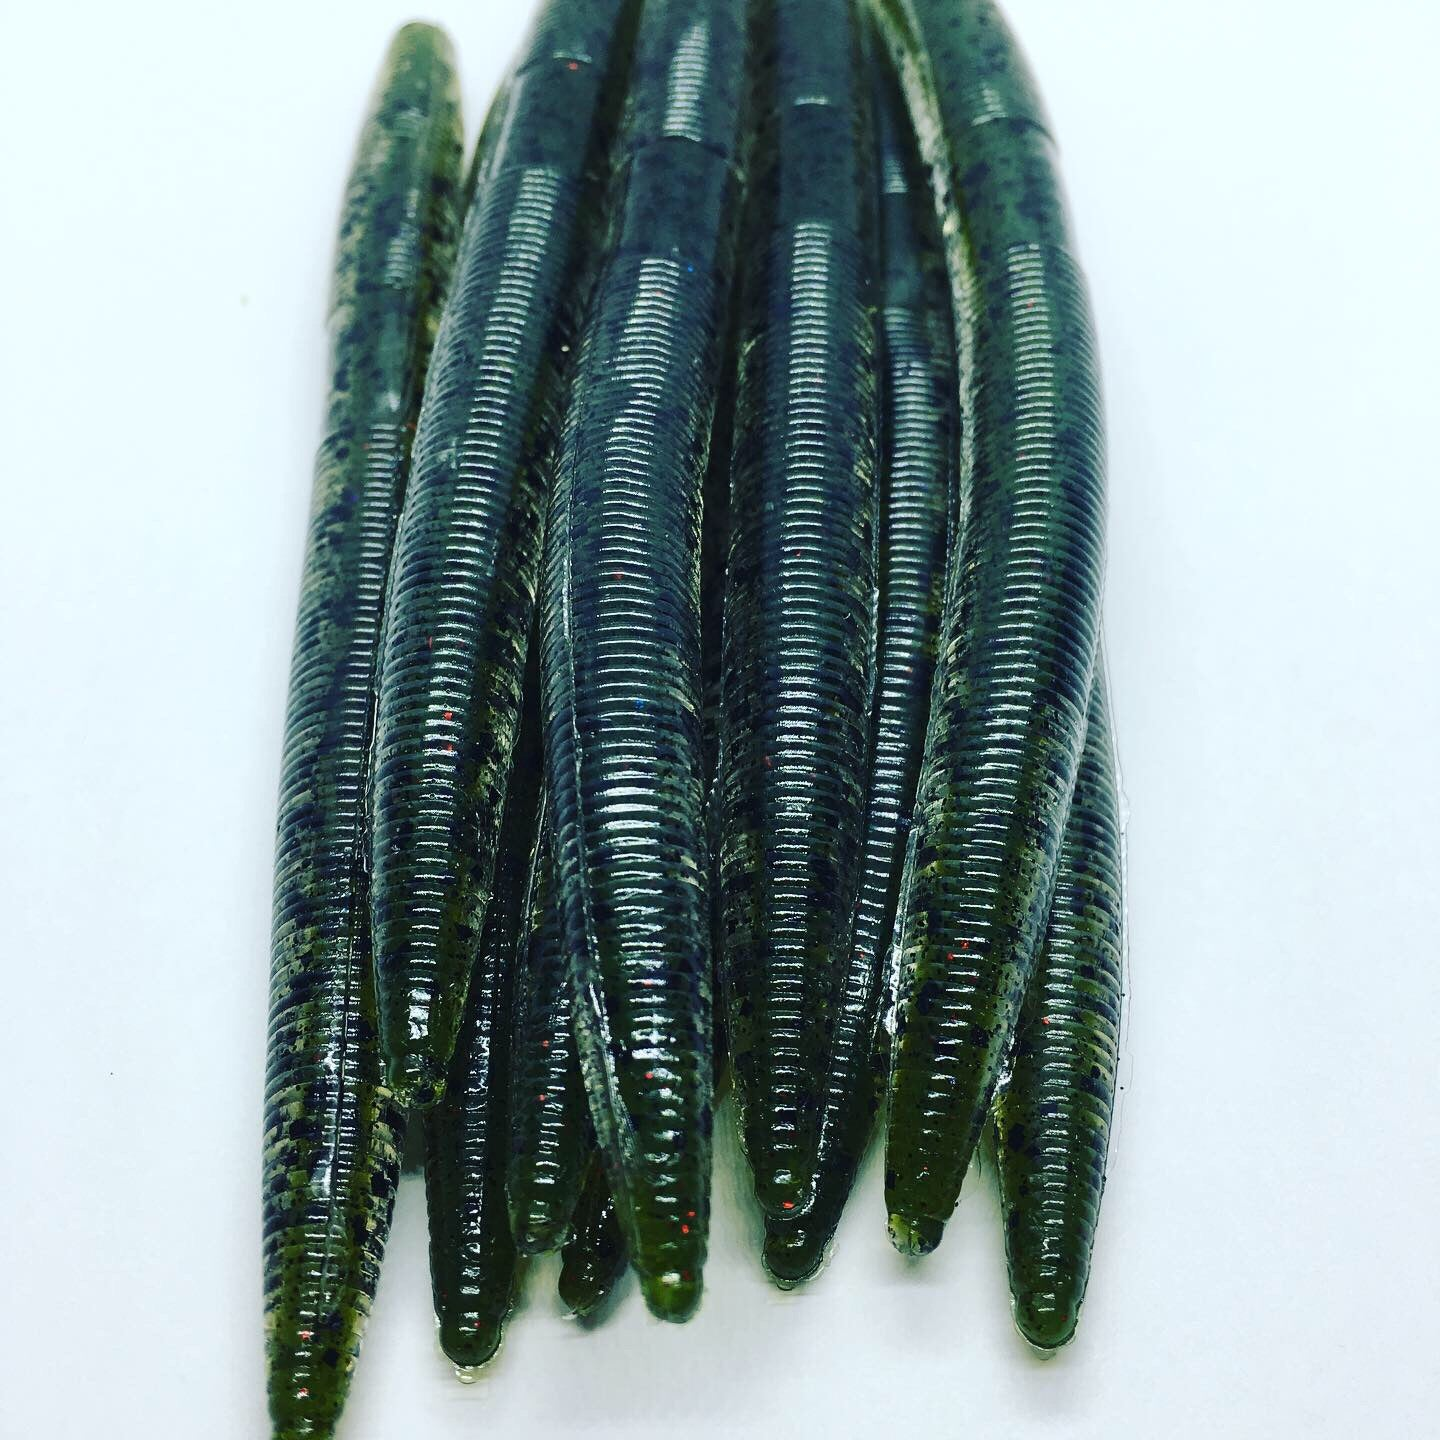 Mini Fat Worms: Green Pumpkin Blood